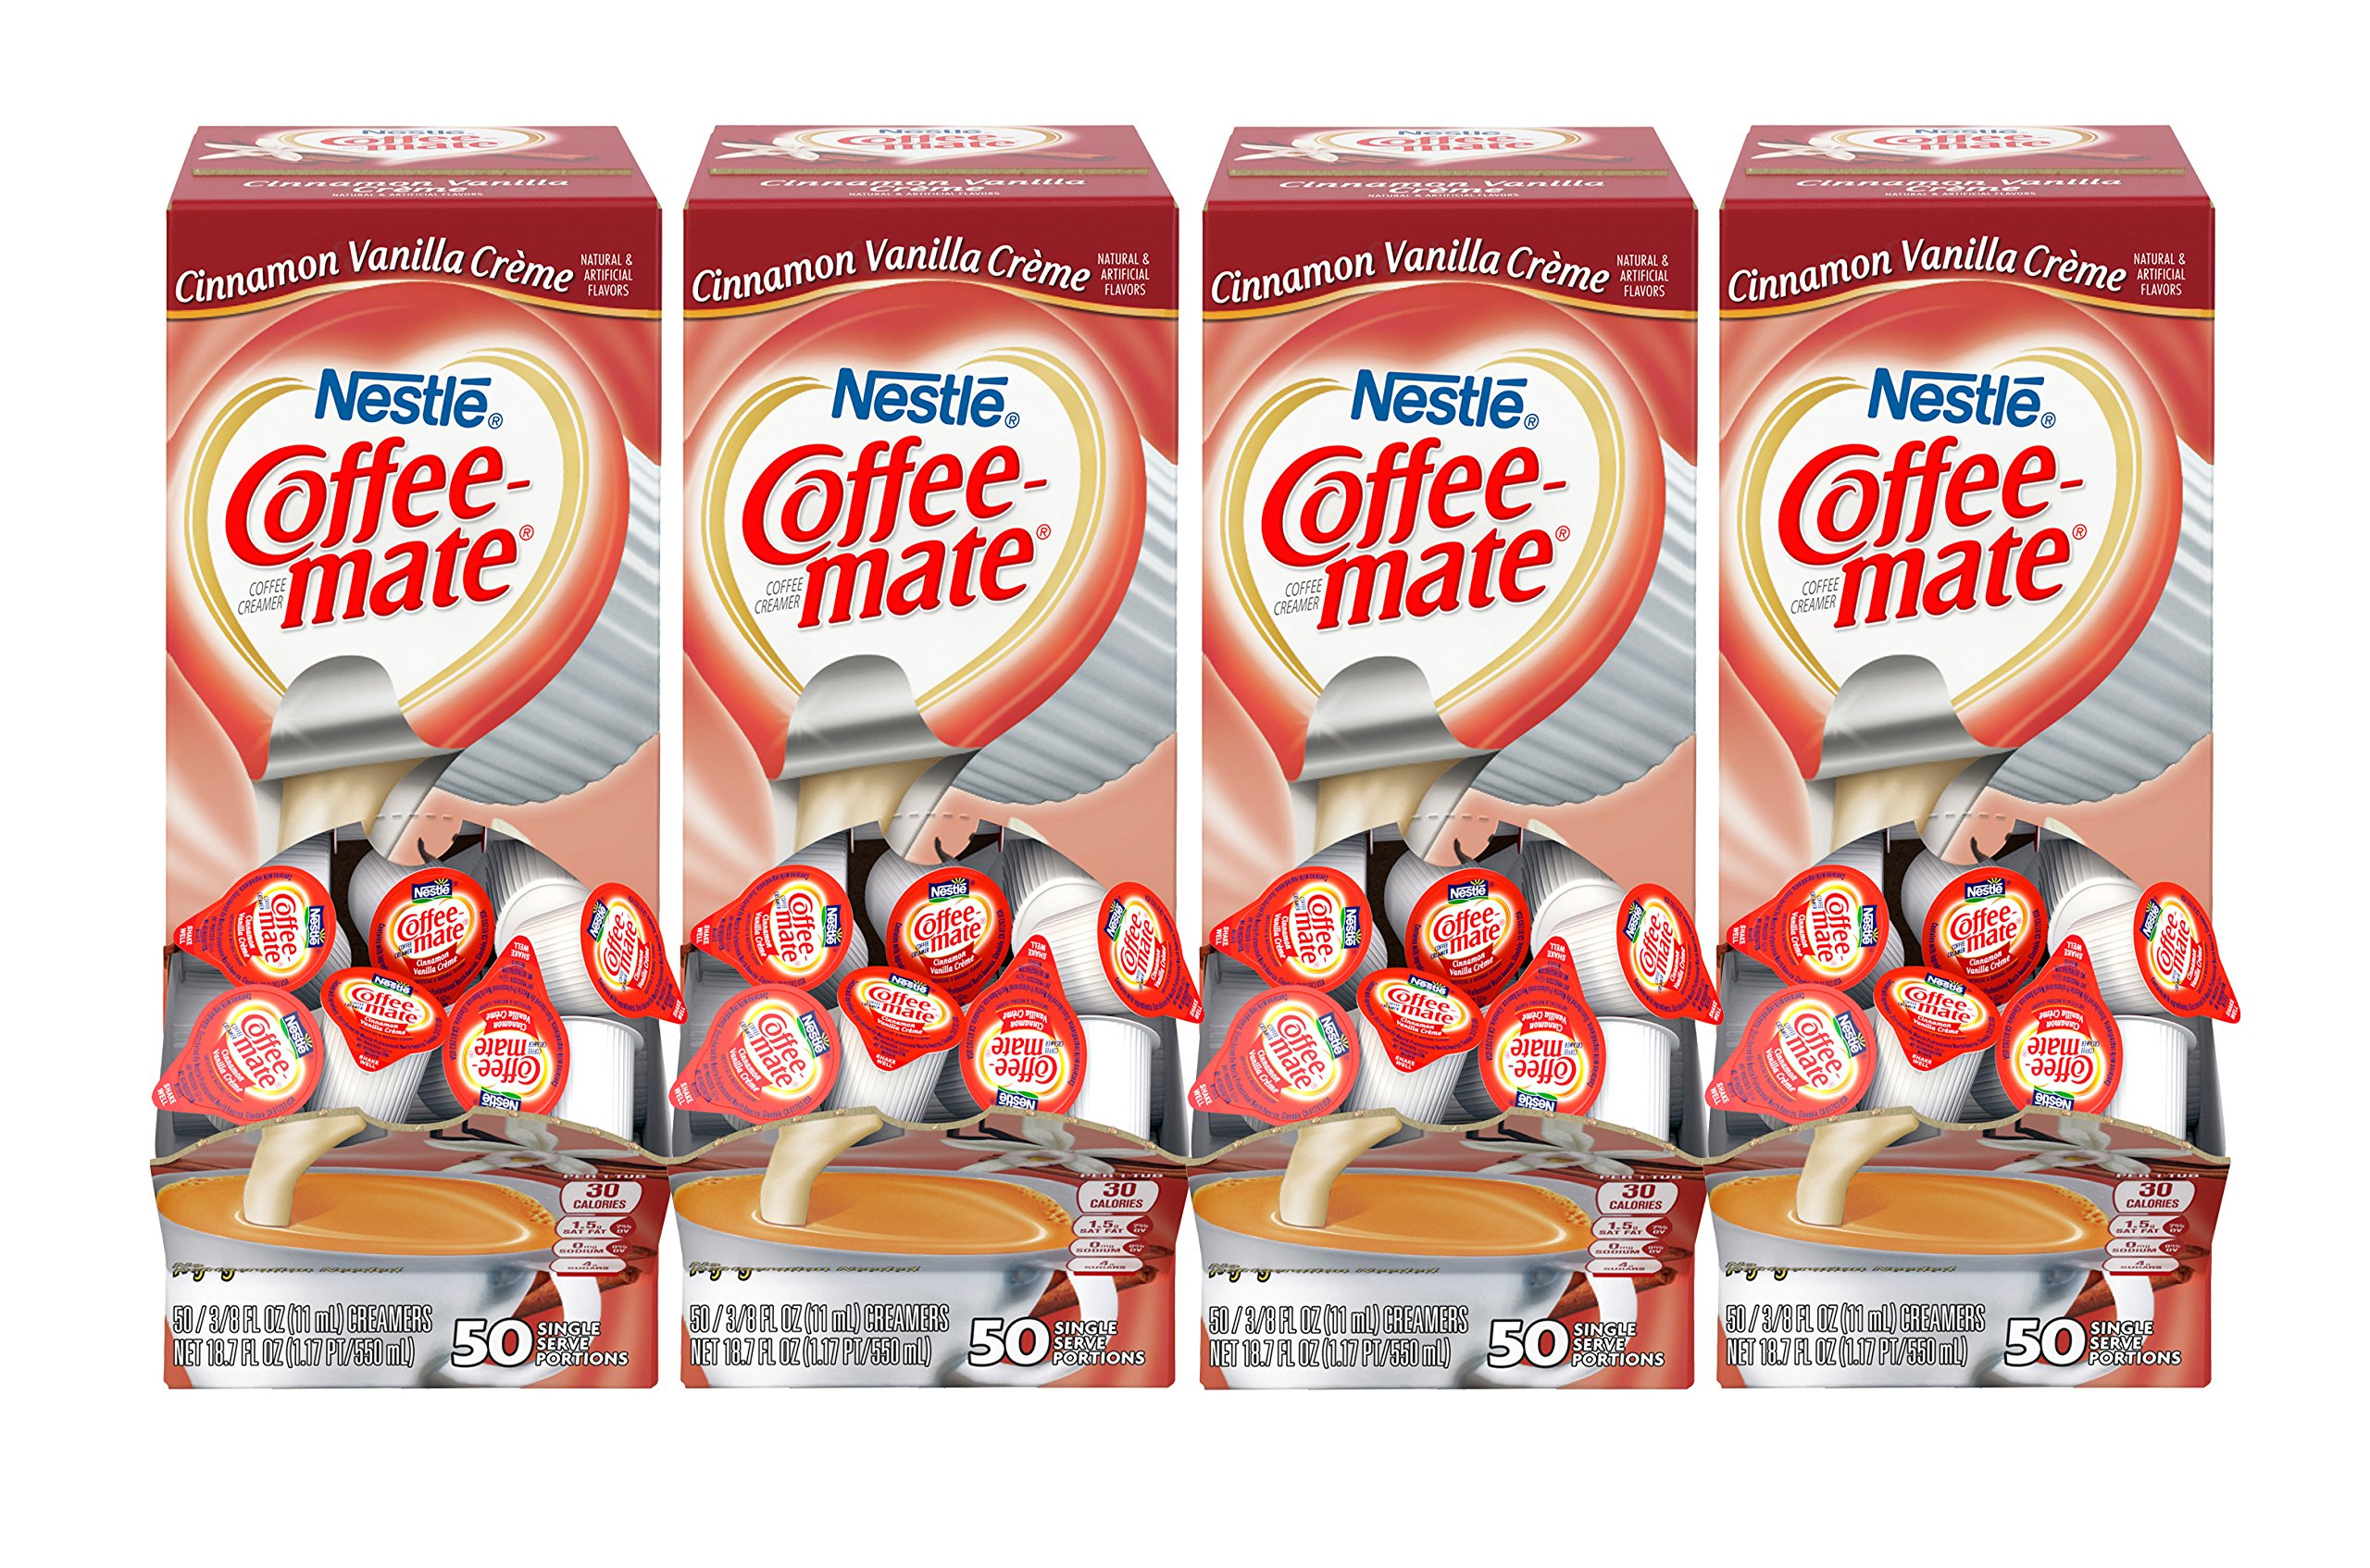 NESTLE COFFEE-MATE Coffee Creamer, Cinnamon Vanilla Creme, 0.375oz liquid creamer singles, 50 Per Box (Case of 4 Boxes)